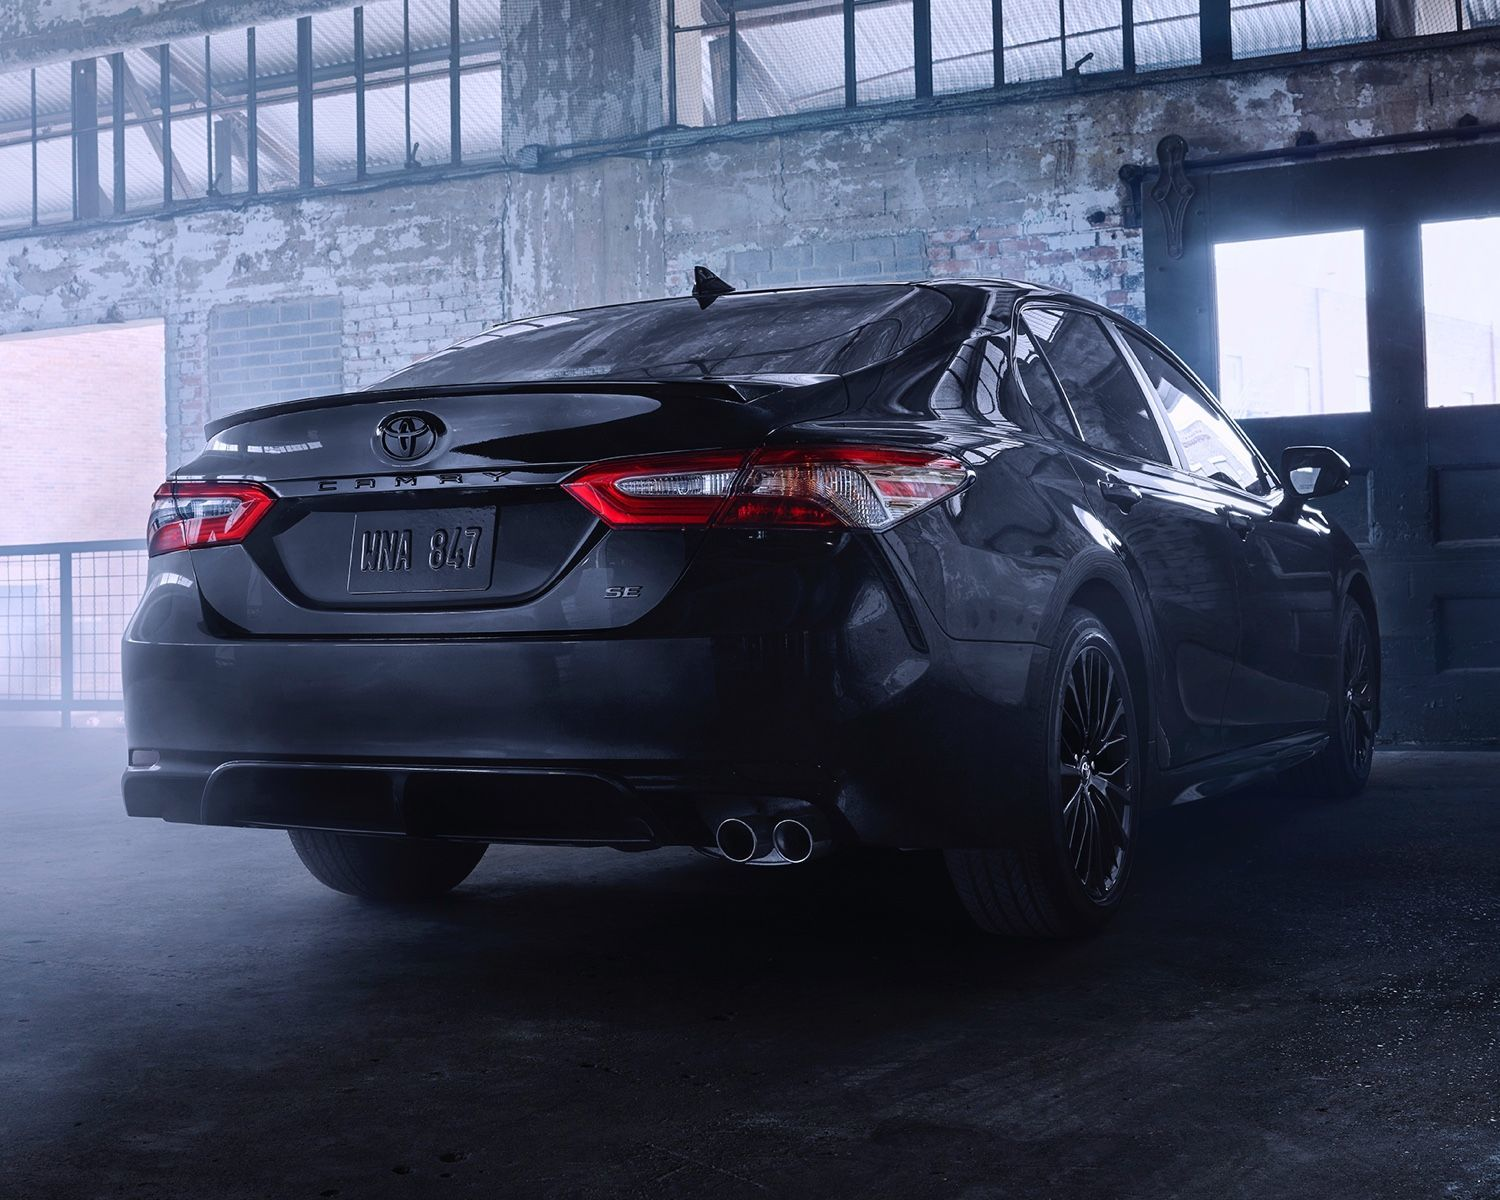 Camry SE AWD Nightshade Edition shown in Midnight Black Metallic